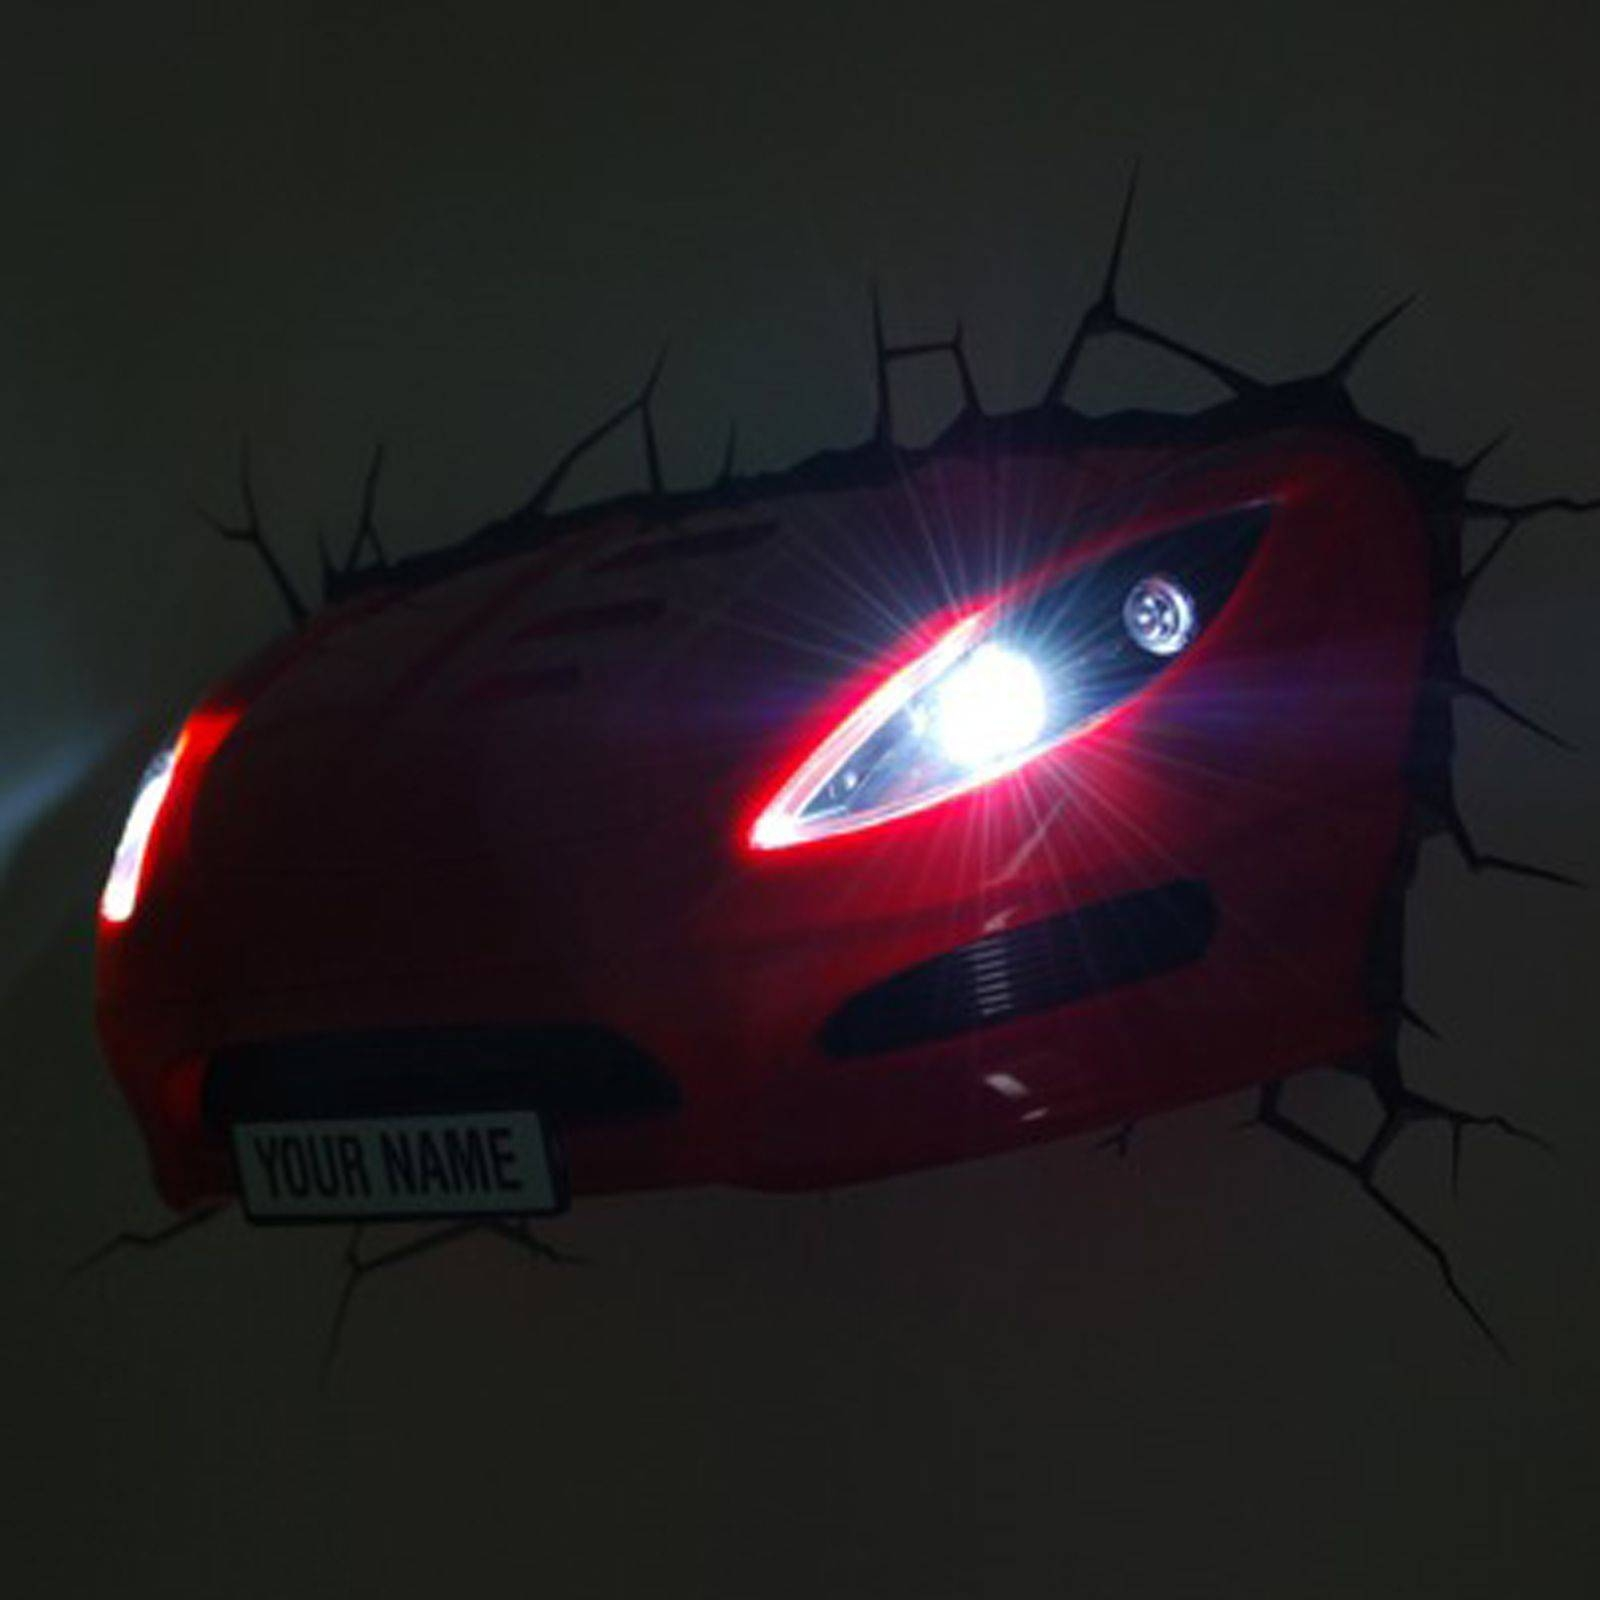 Red Sports Car 3D Effect Wall Light Lamp New Led Bedroom Decor | Ebay Inside 2018 Cars 3D Wall Art (View 20 of 20)